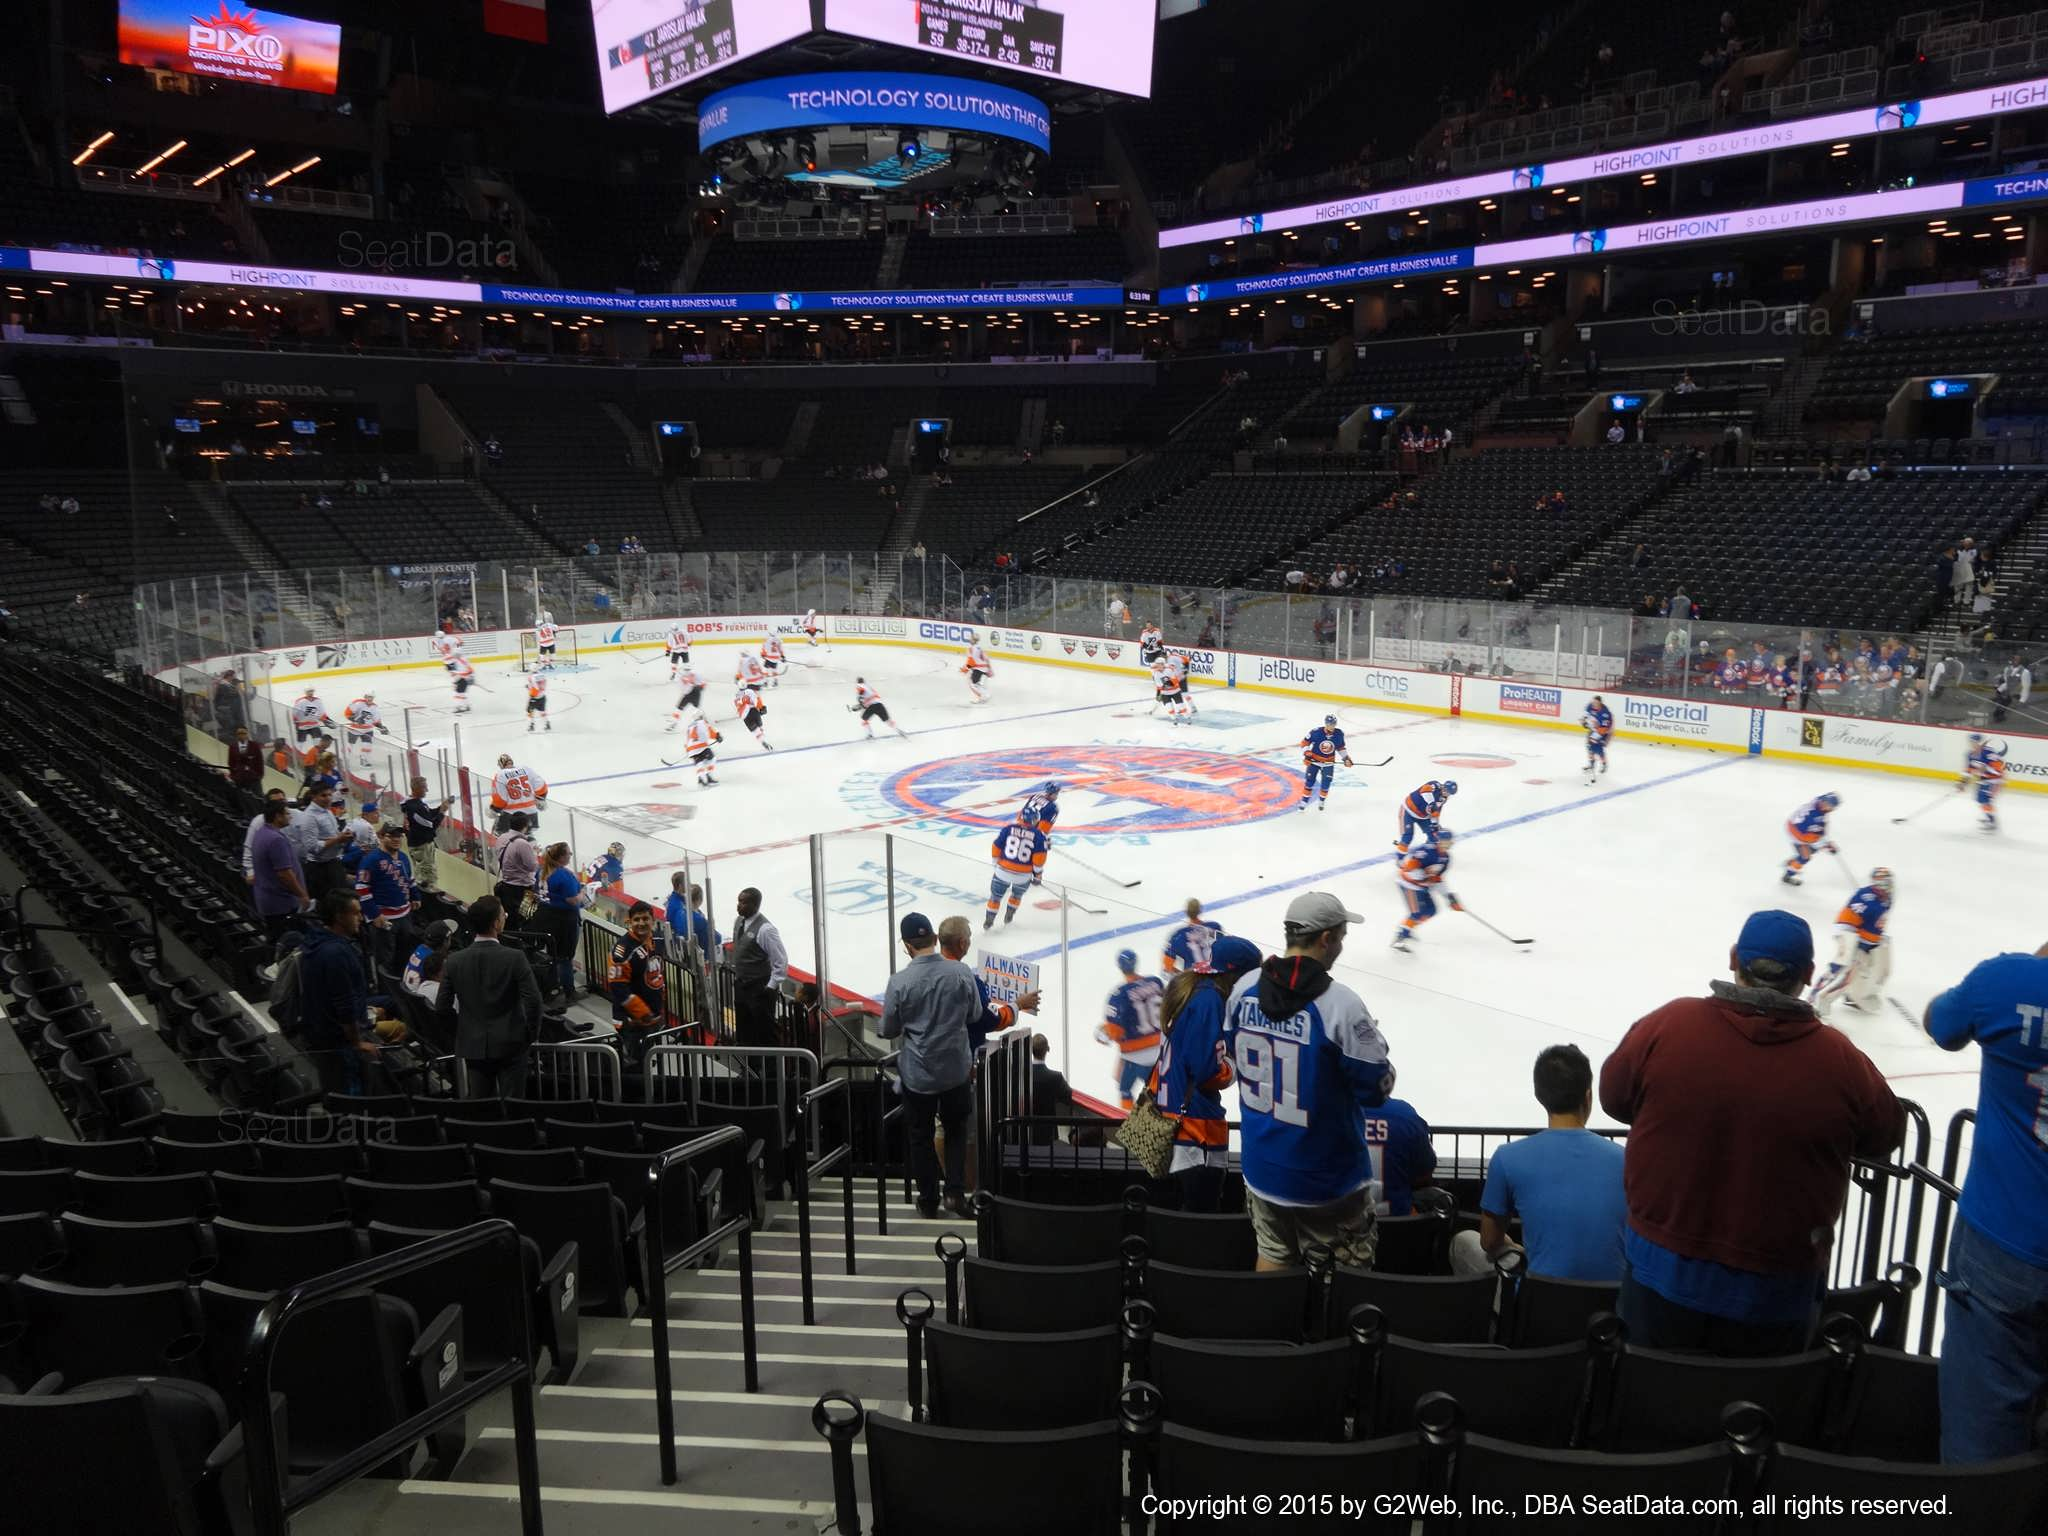 Seat view from section 4 at the Barclays Center, home of the New York Islanders